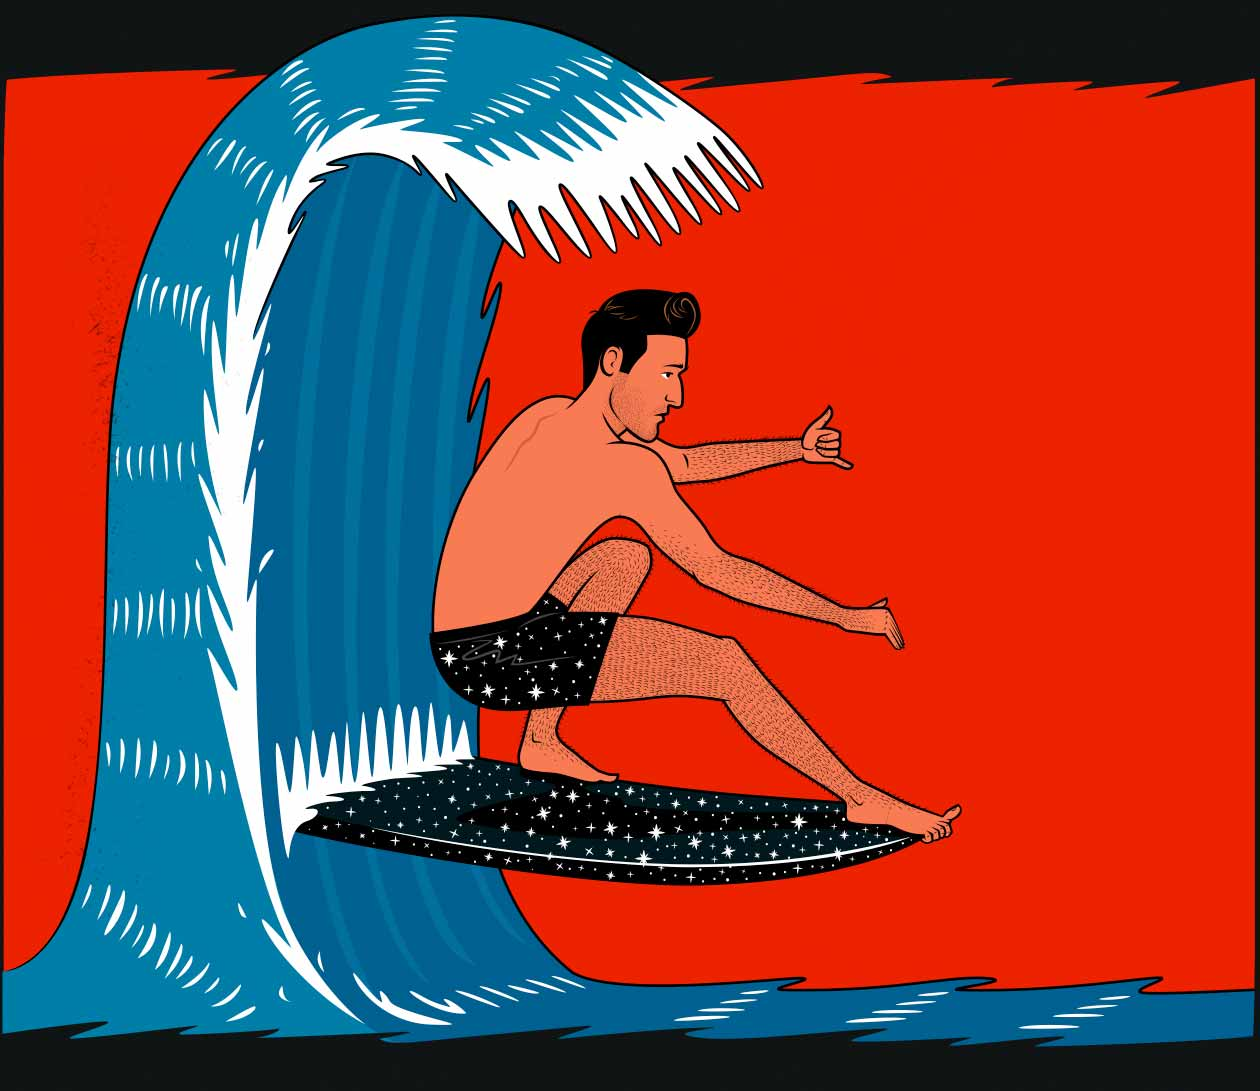 Illustration of a skinny fat ectomorph surfing